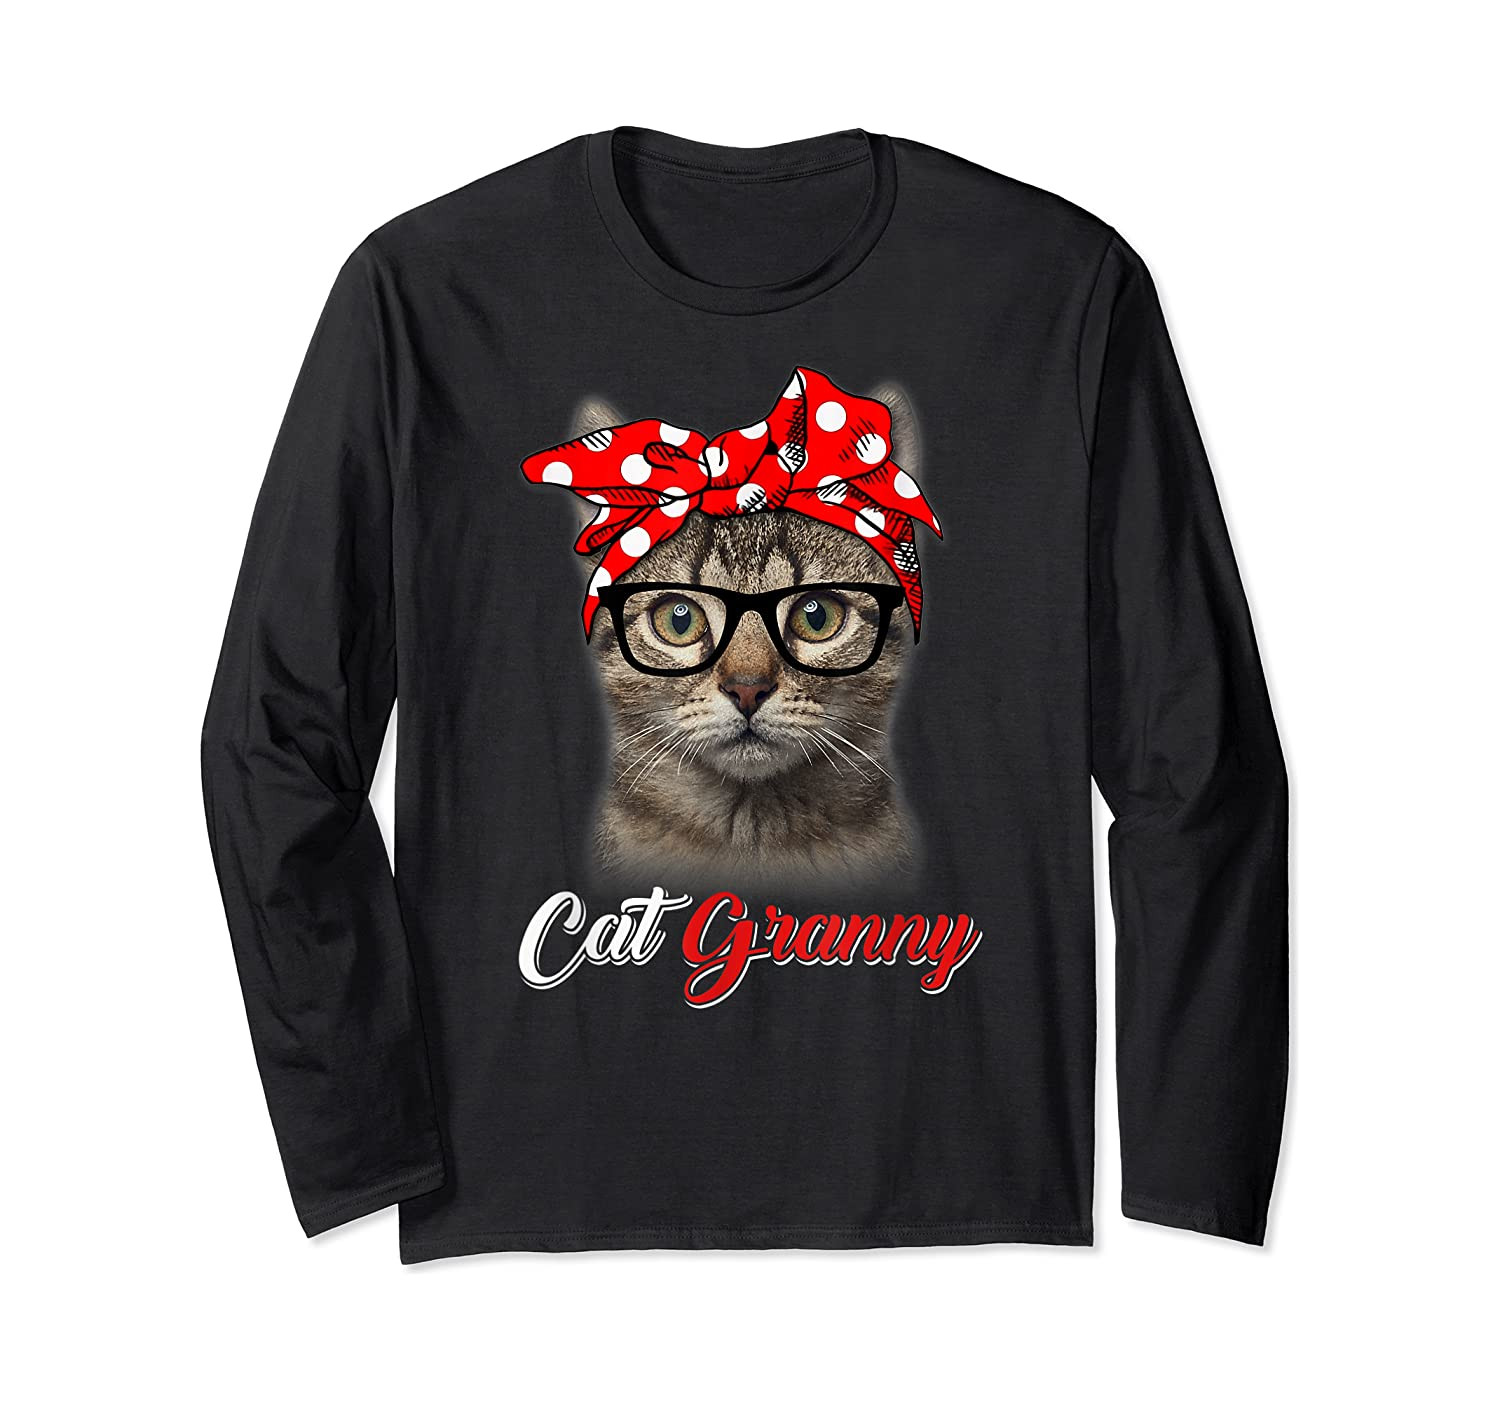 Funny Cat Granny Shirt For Cat Lovers-mothers Day Gift Long Sleeve T-shirt